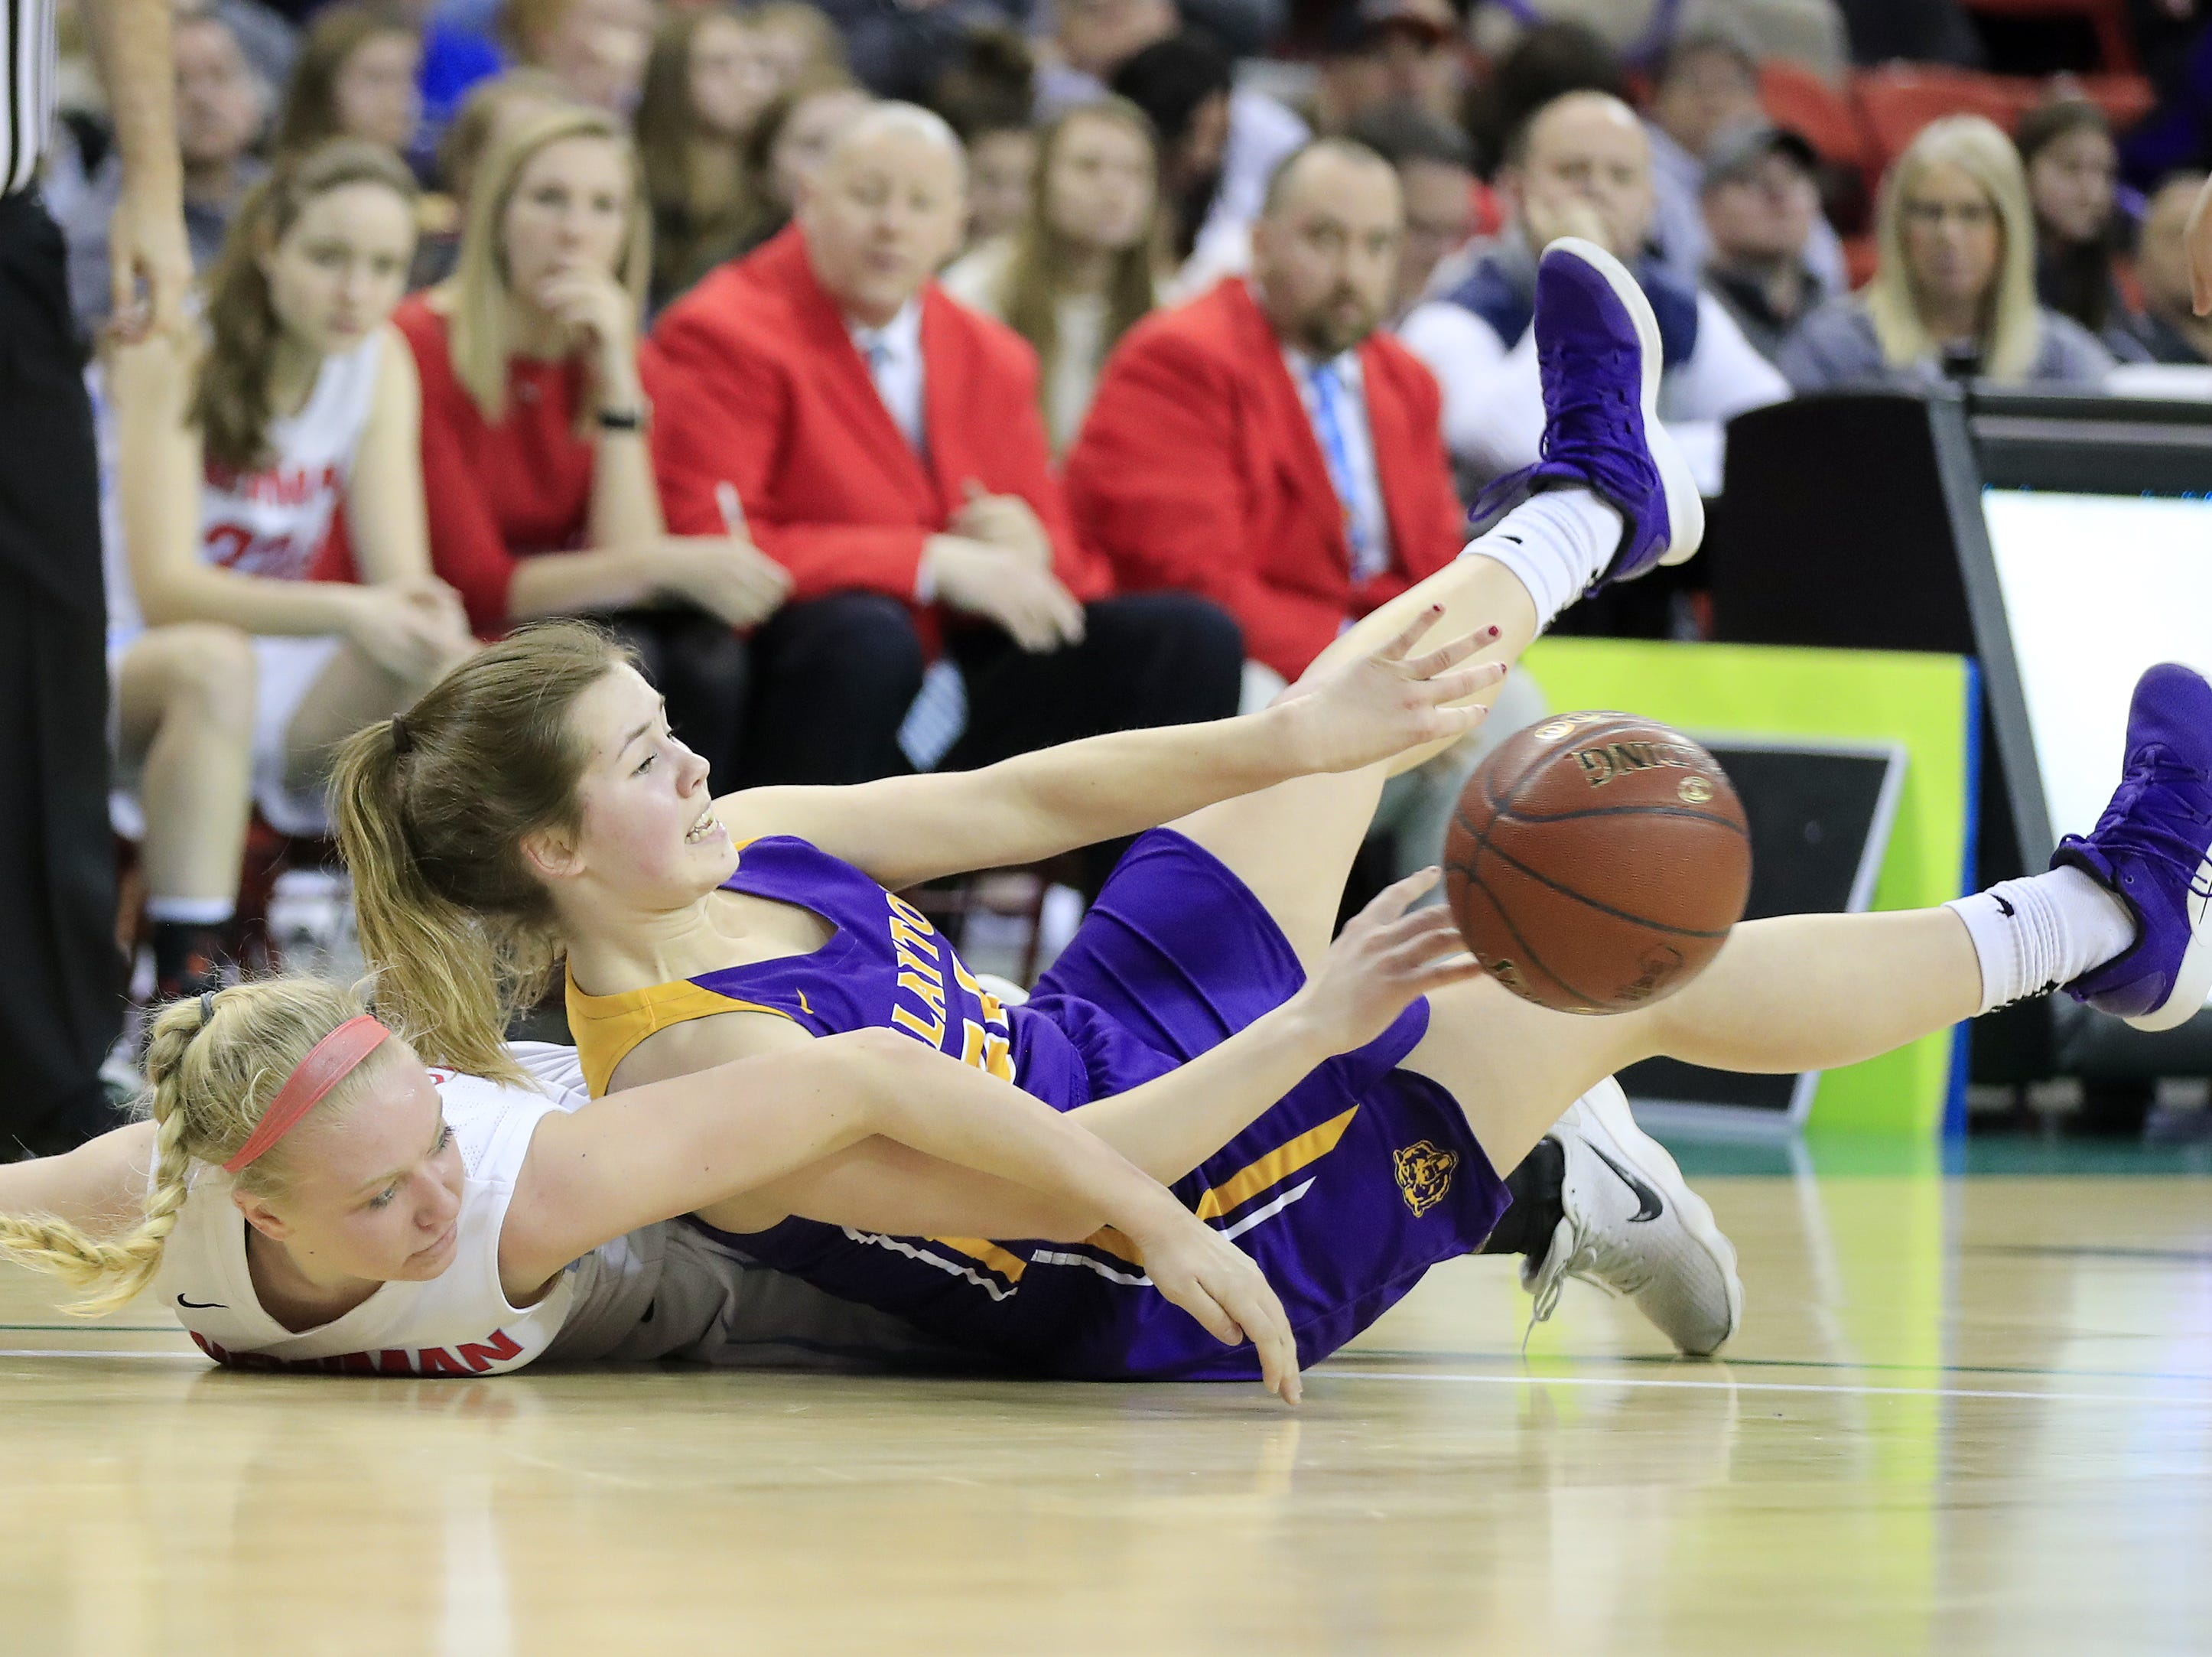 Clayton's Kailey Ketz (right) gets to a loose ball before Wausau Newman Catholic's Mackenzie Krach in a Division 5 semifinal at the WIAA state girls basketball tournament at the Resch Center on Friday, March 8, 2019 in Ashwaubenon, Wis. Adam Wesley/USA TODAY NETWORK-Wisconsin